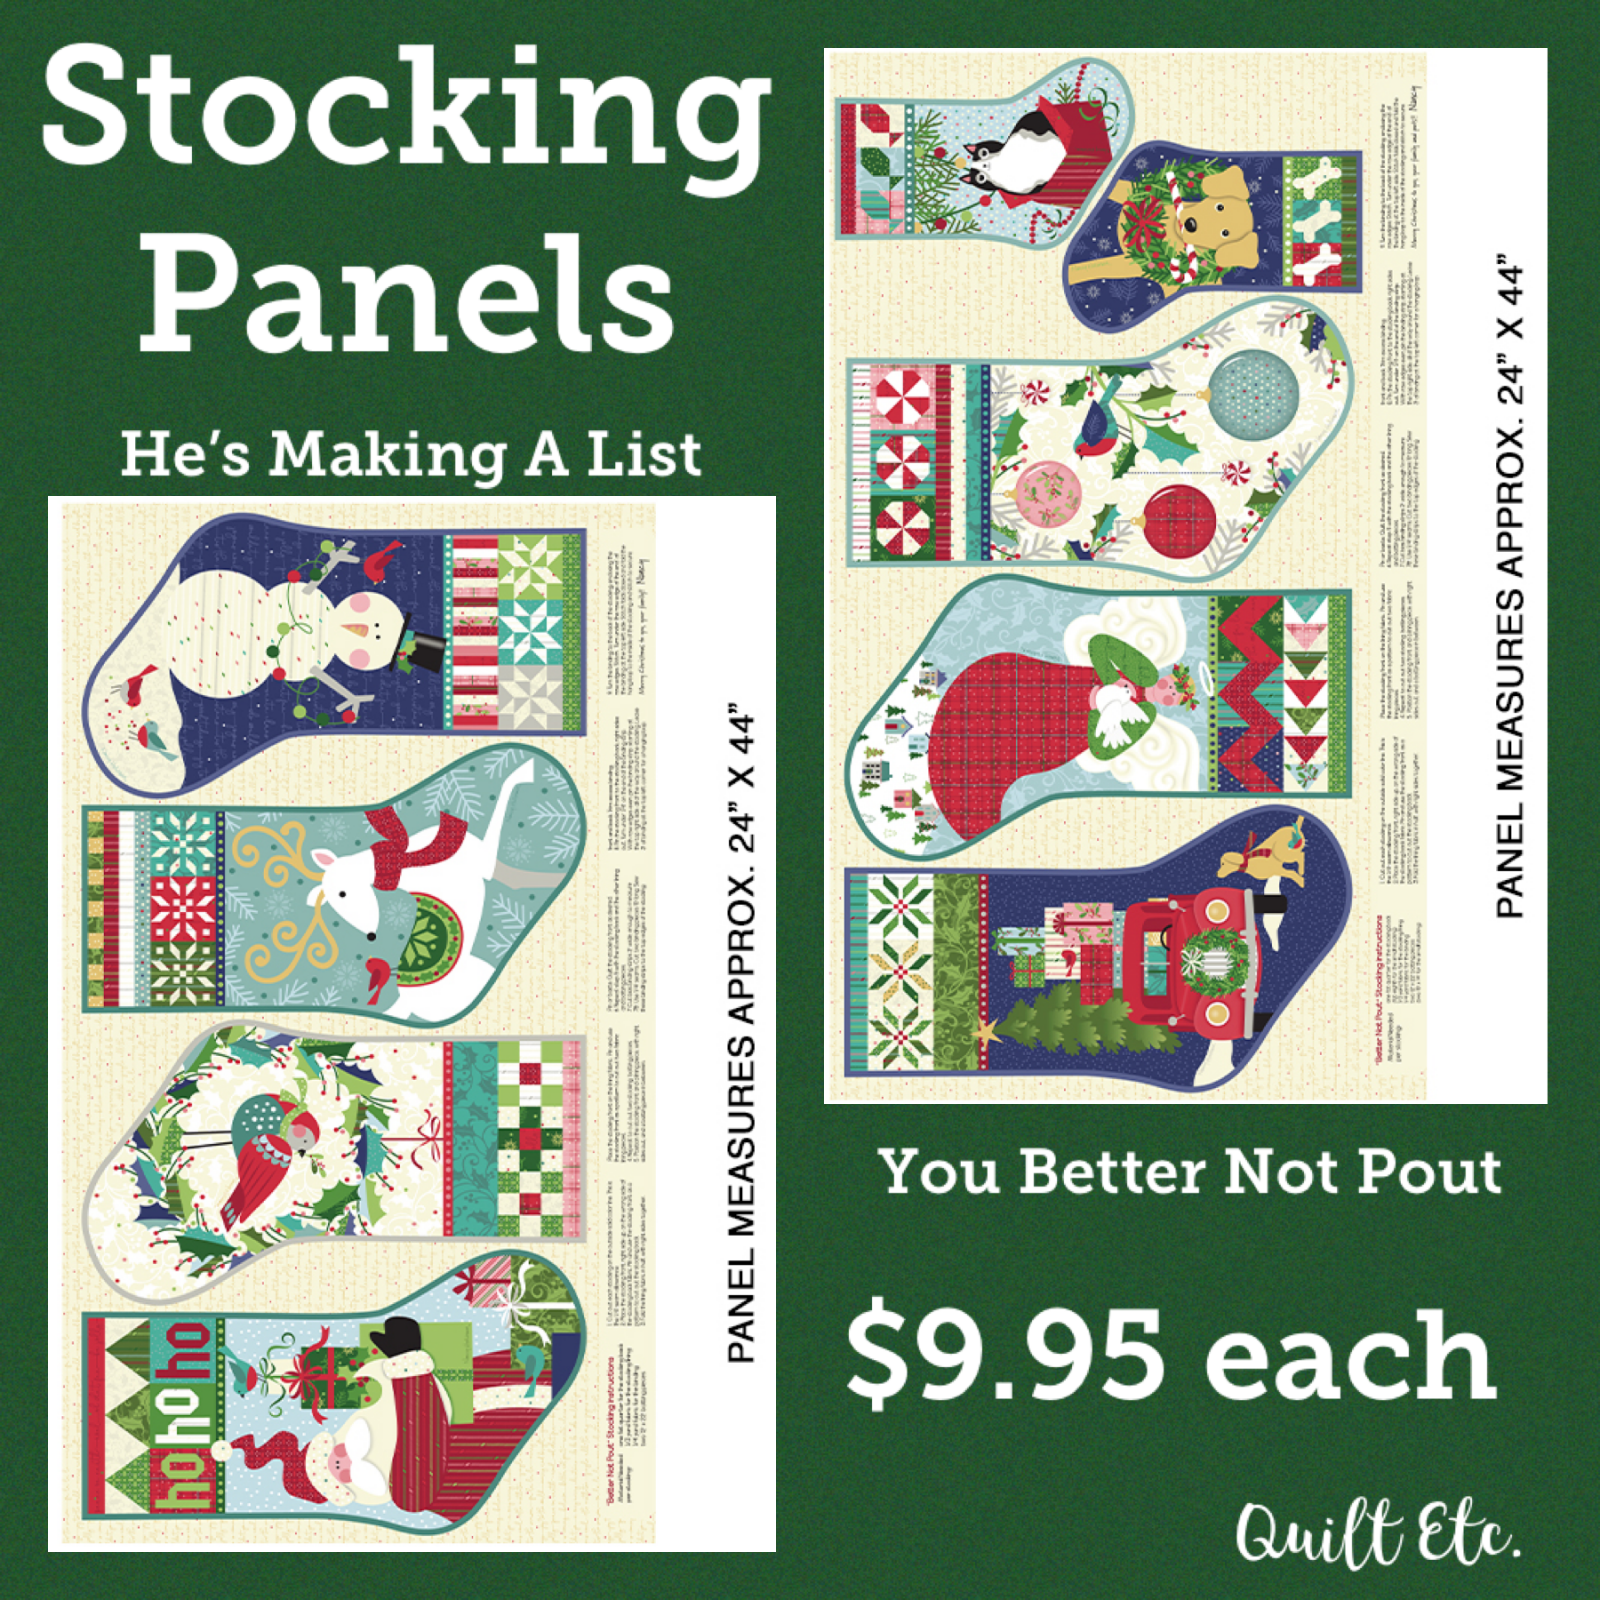 Better Not Pout Stocking Panels